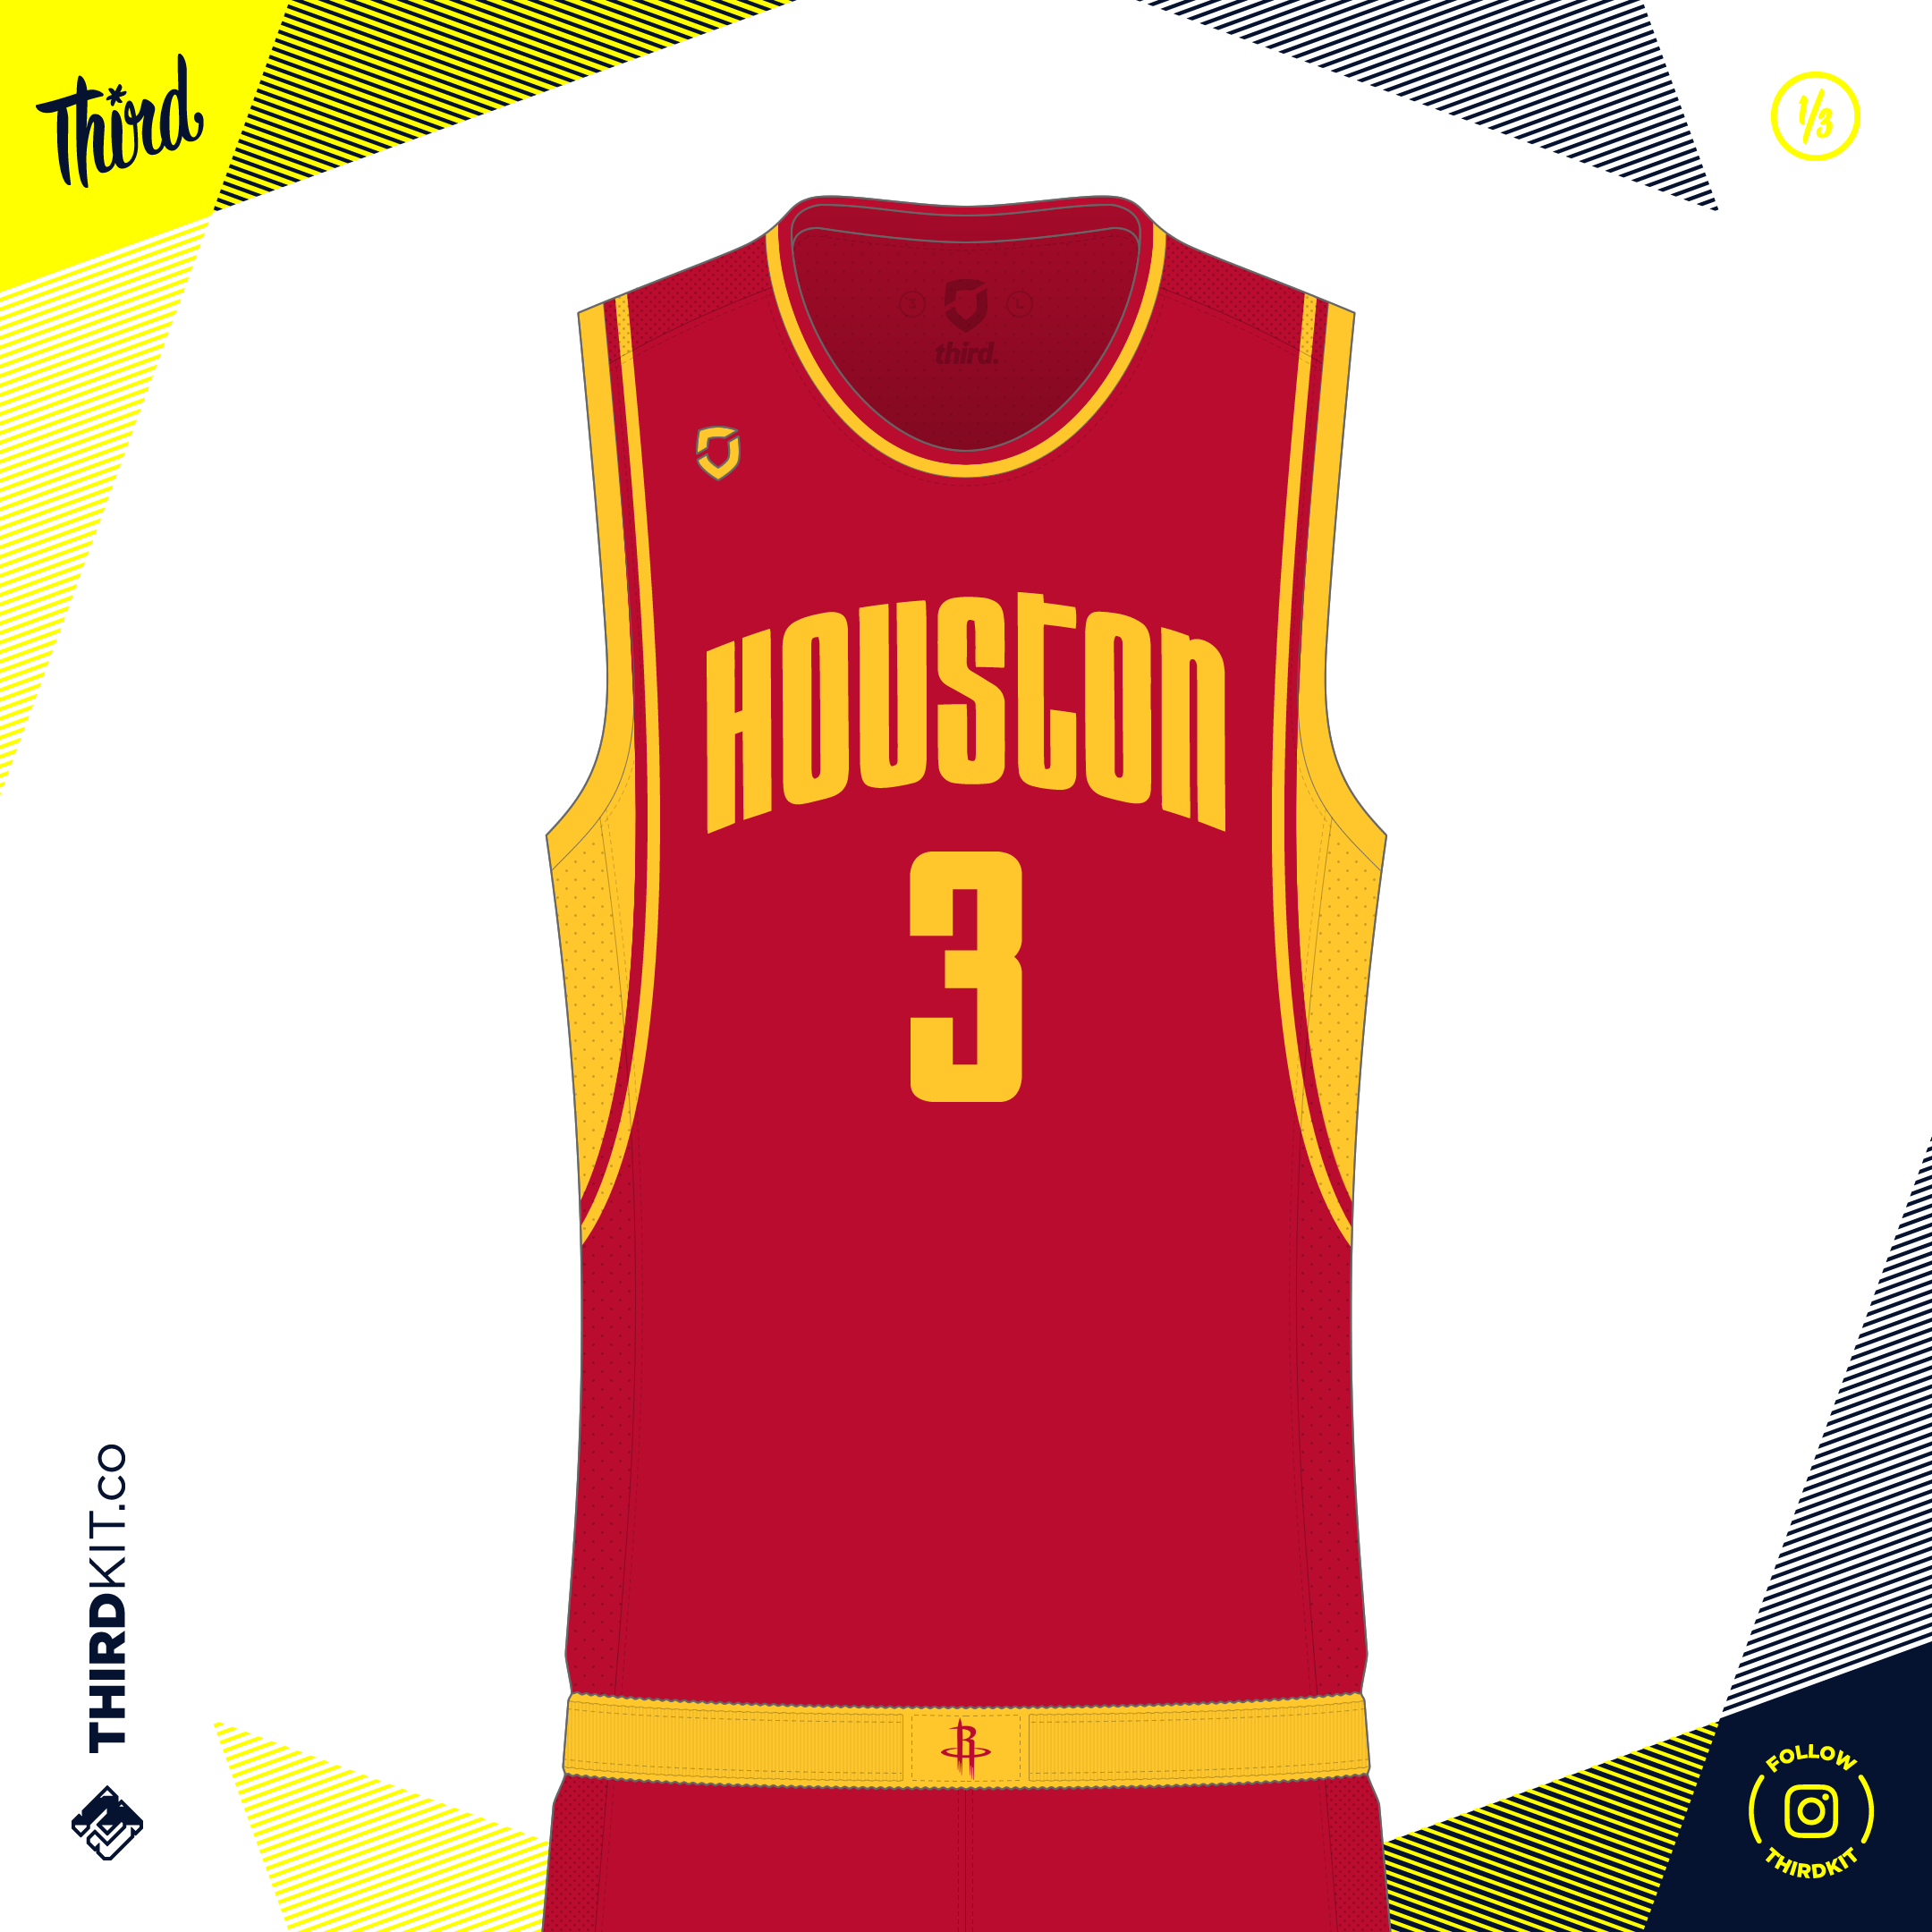 brand new 9ef3b bc50e Houston Rockets Away — Third Sports Design by Dean Robinson